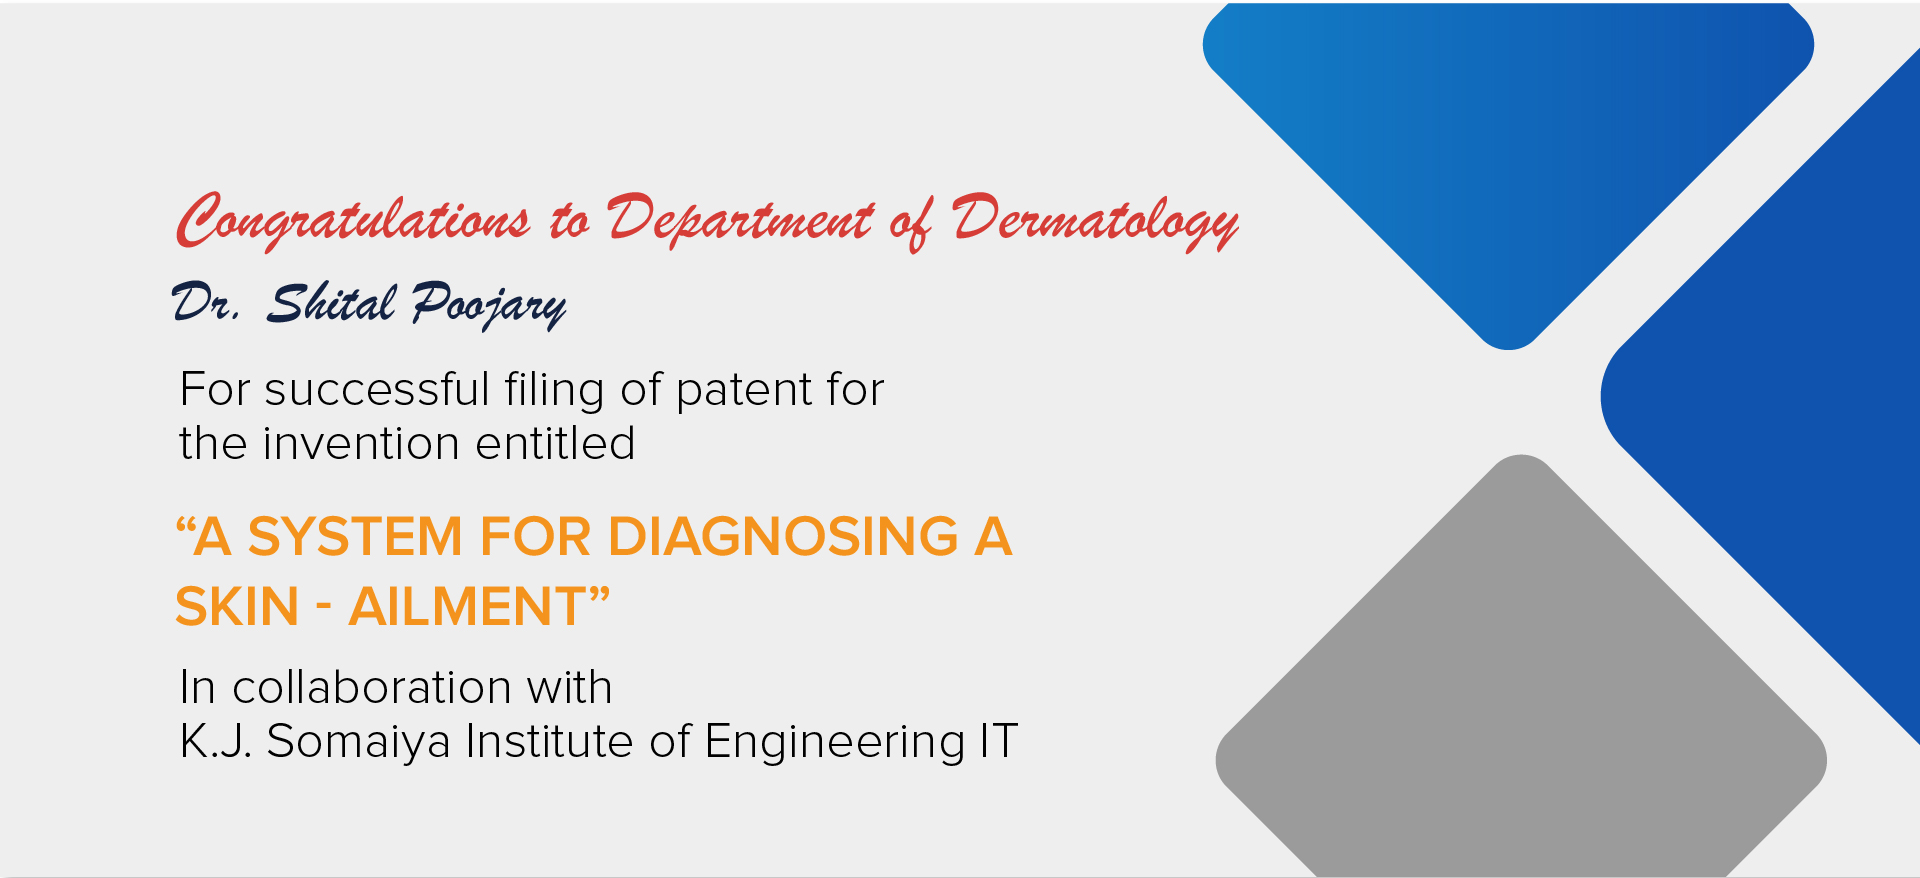 Department of Dermatology